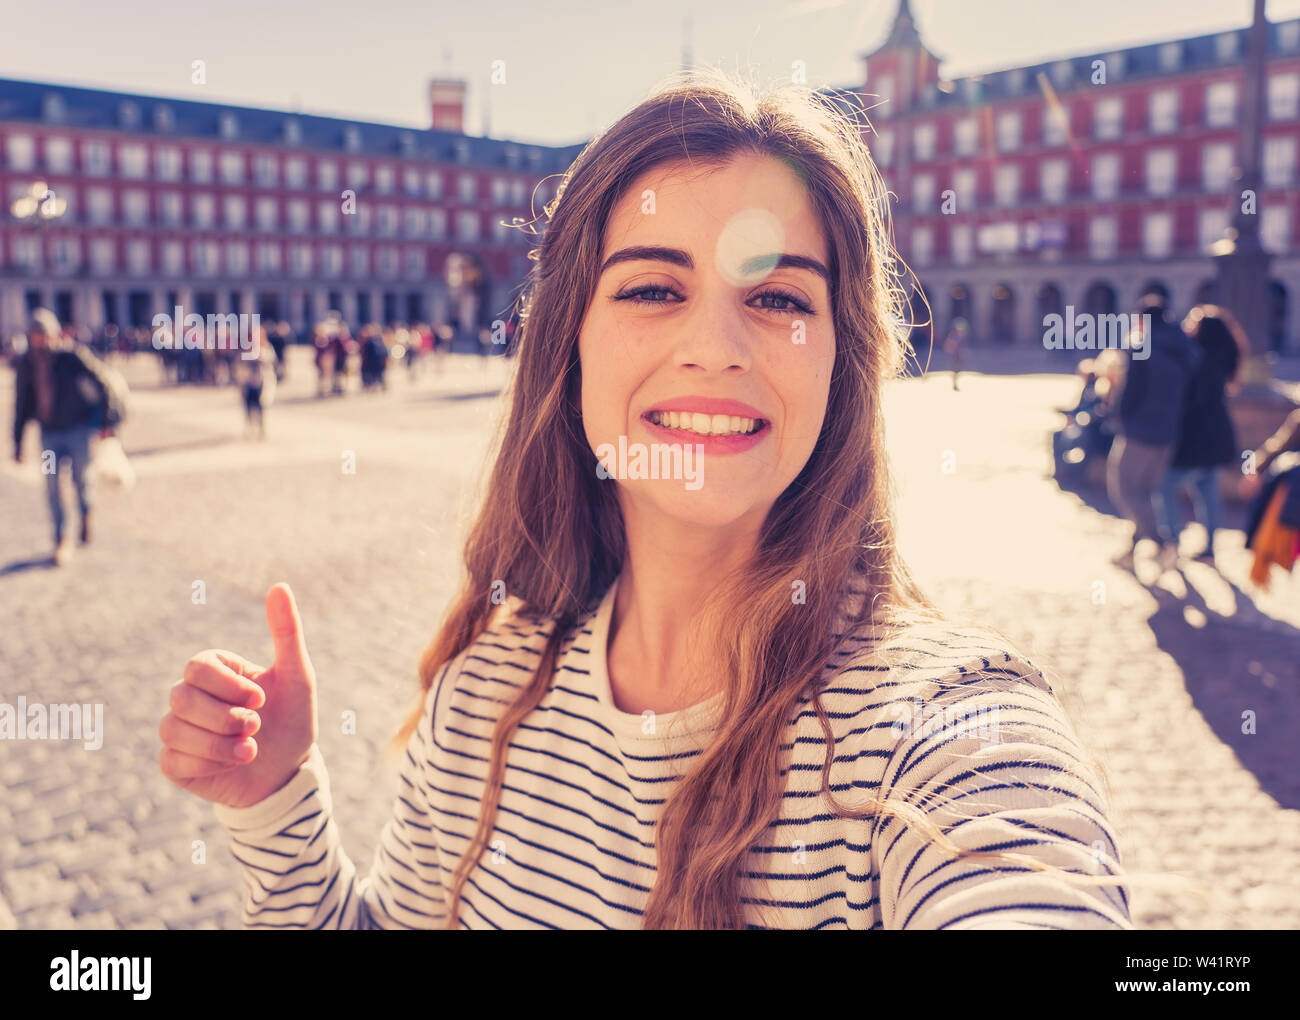 Beautiful young student tourist woman happy and excited in Plaza Mayor Madrid taking a selfie holding the mobile or tablet. Looking cheerful making th - Stock Image